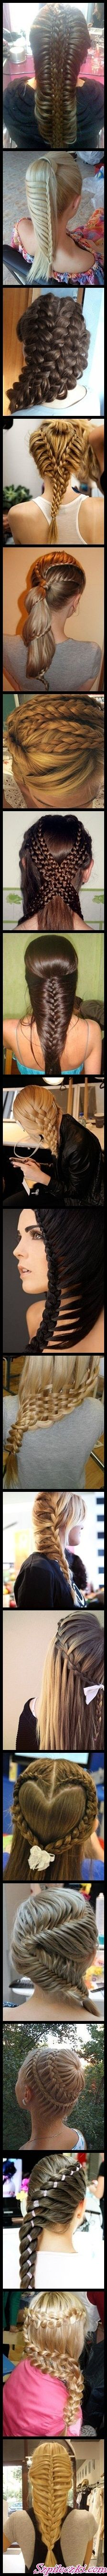 Lots of braids: Braids Hairstyles, Awesome Hair, Hairdos, Hair Styles, Braids Braids, Holy Braids, Hair Do S, Crazy Braids